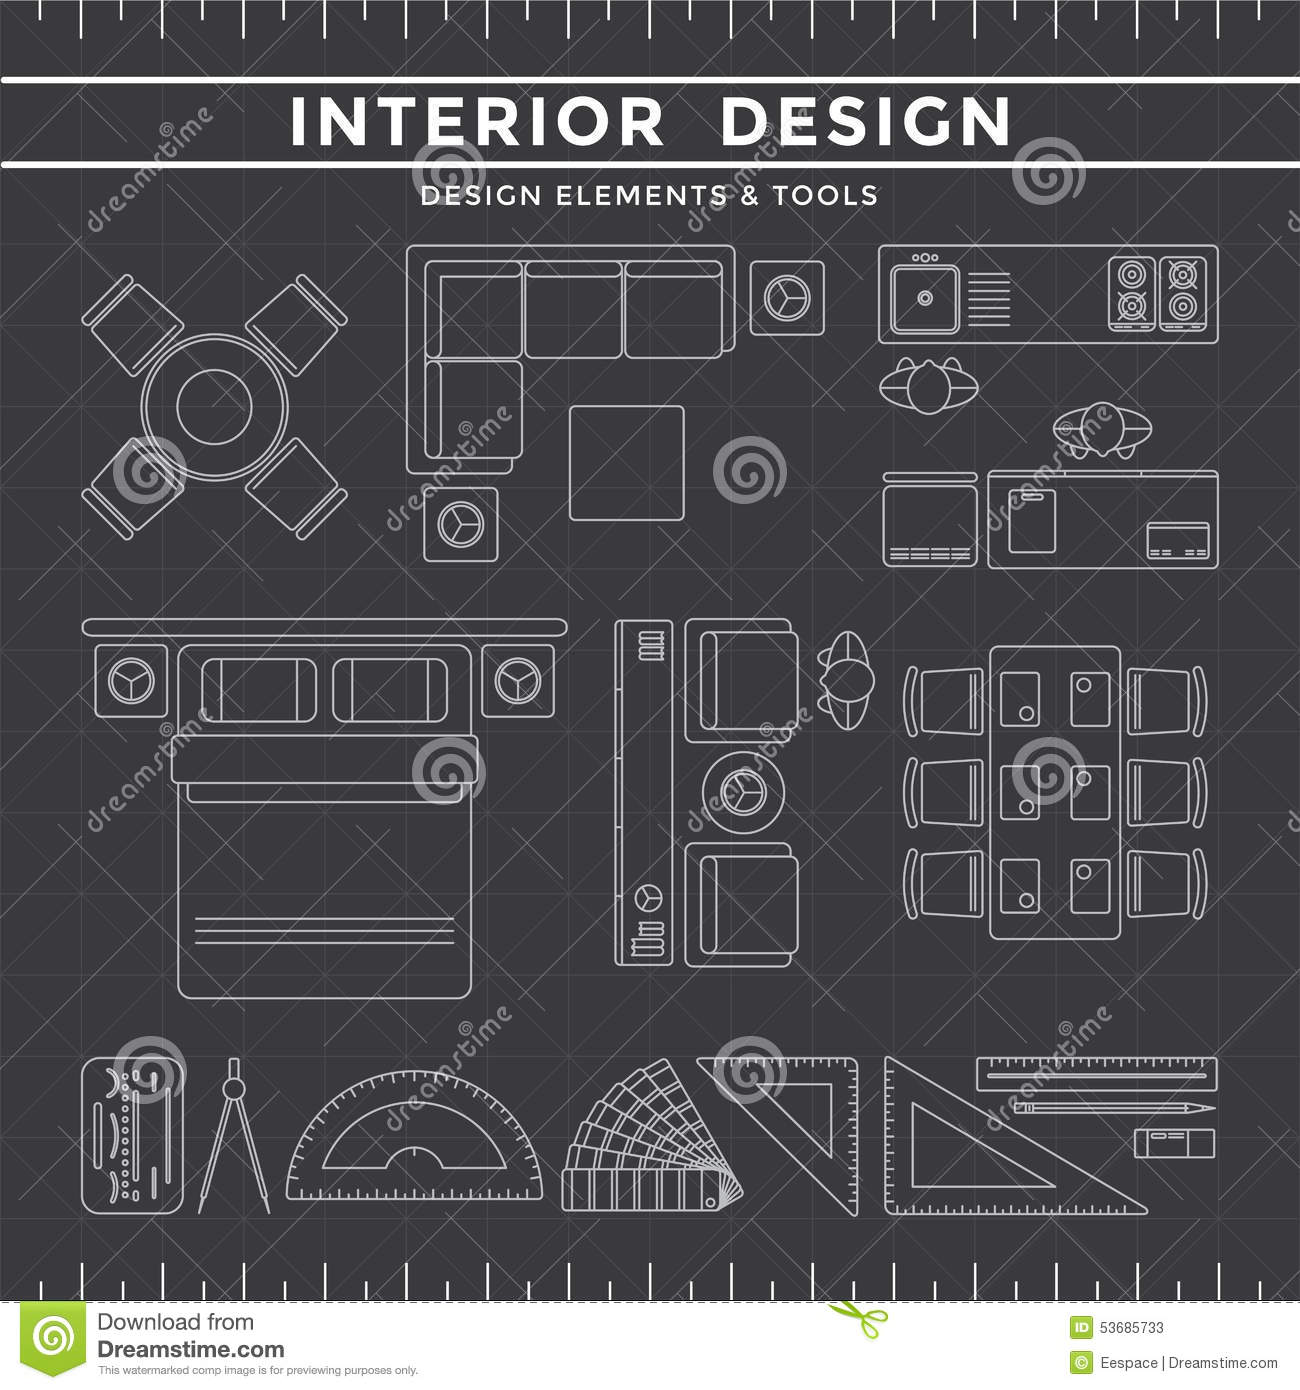 Background dark design equipment icon interior layout line for Interior design tools